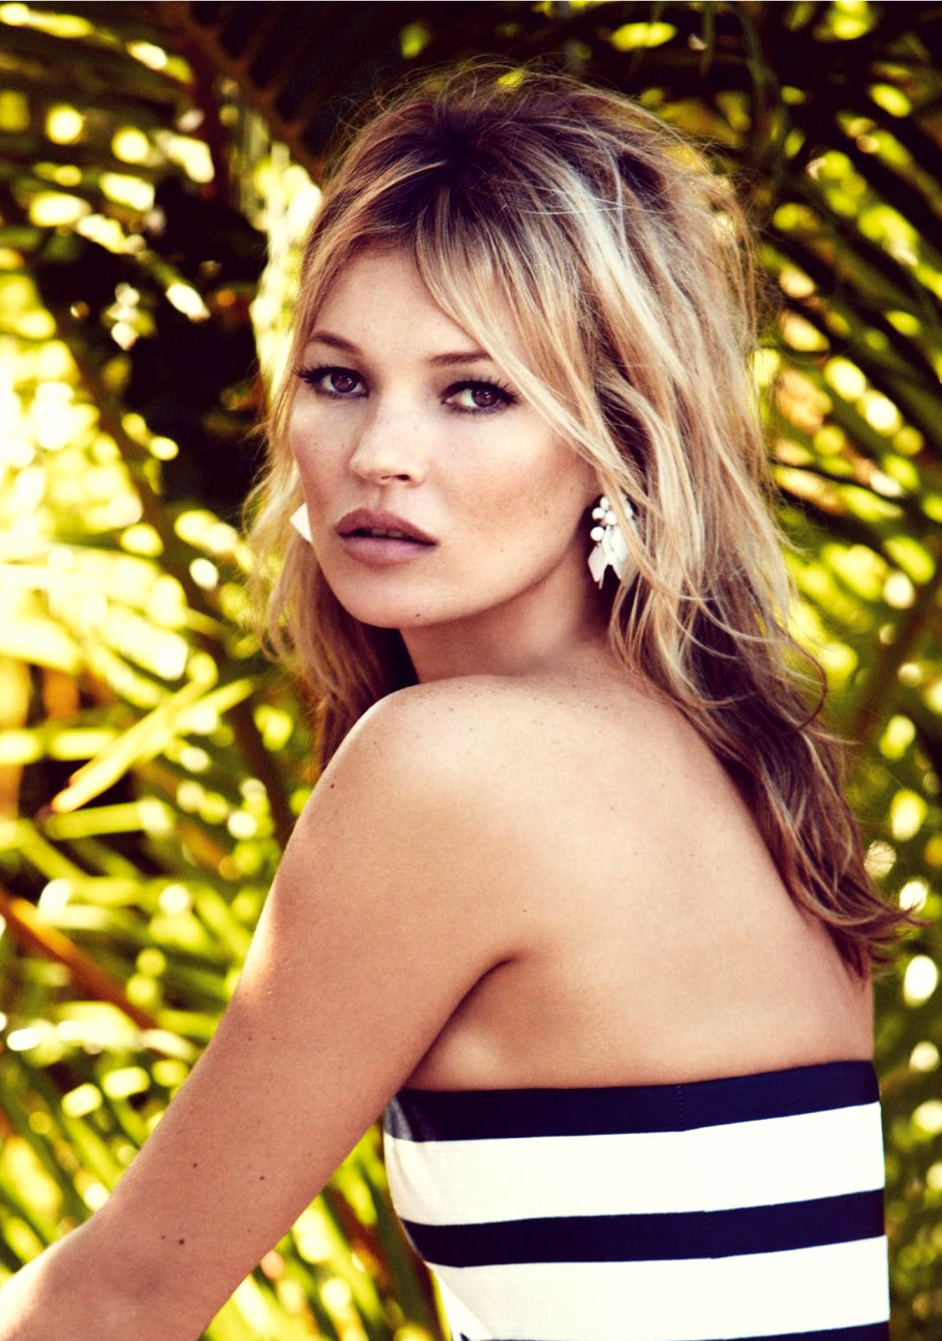 Kate-Moss-by-Patrick-Demarchelier-for-Vogue-UK-June-2013-14